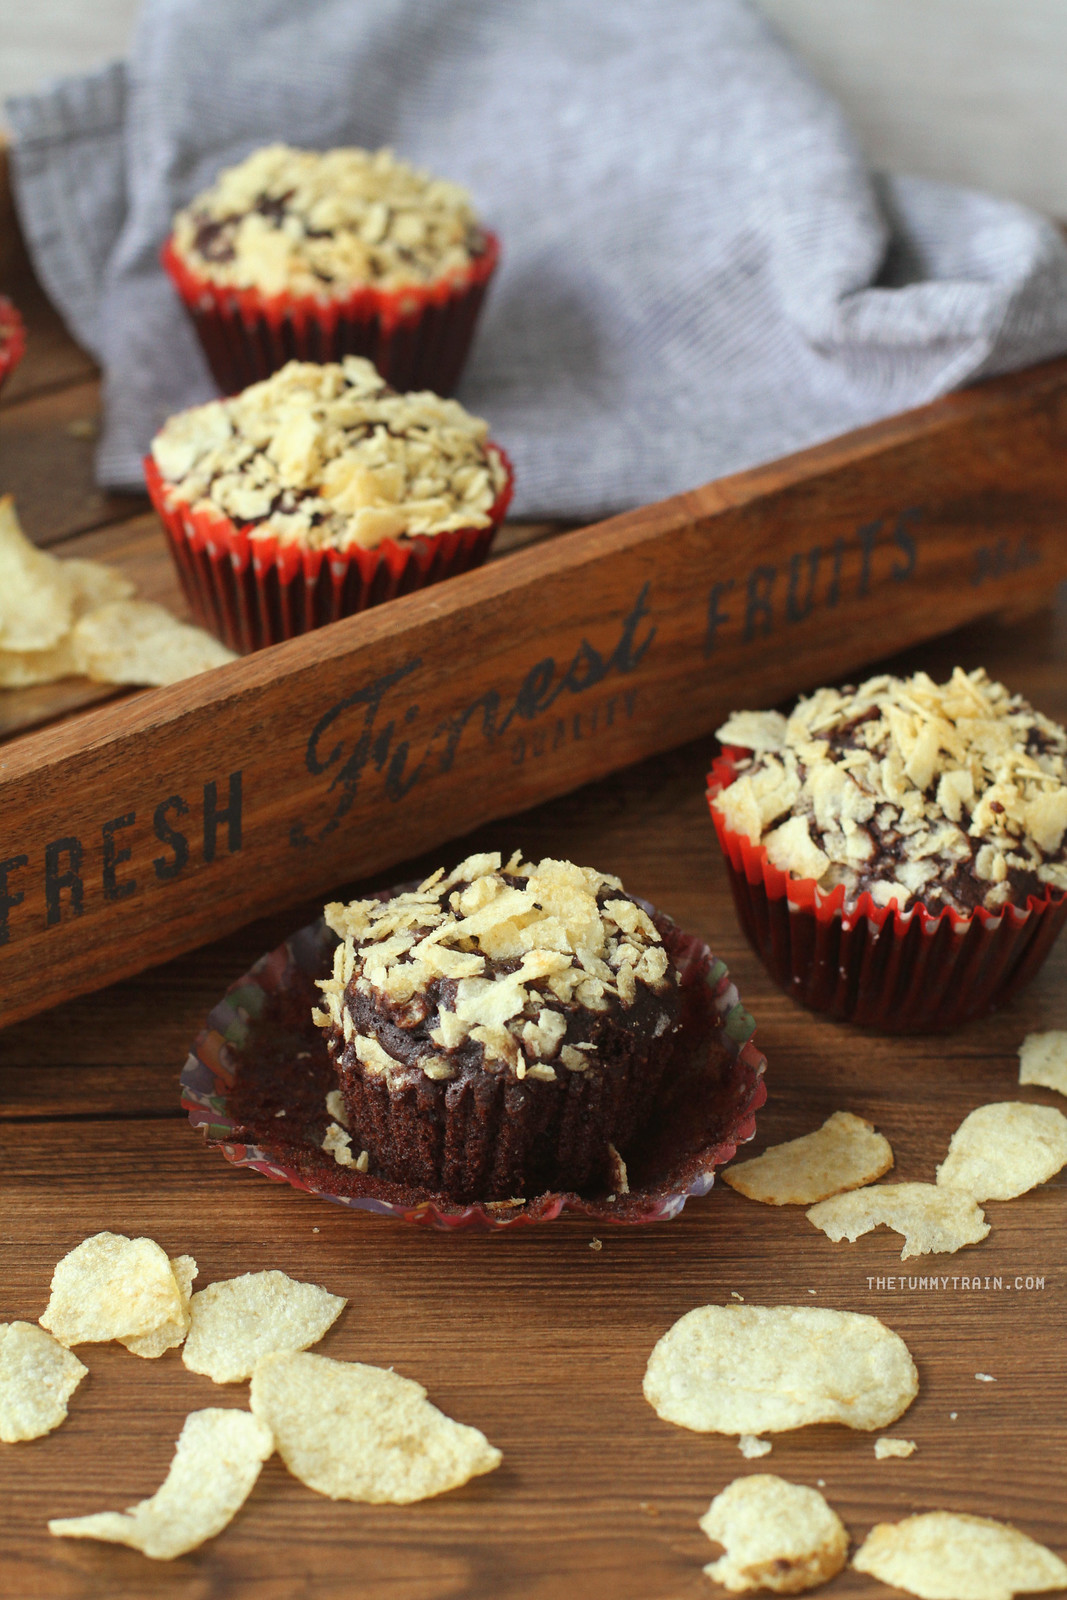 37514912370 8f979ba537 h - These Chocolate-Potato Chips Muffins are a unique play on sweet and salty